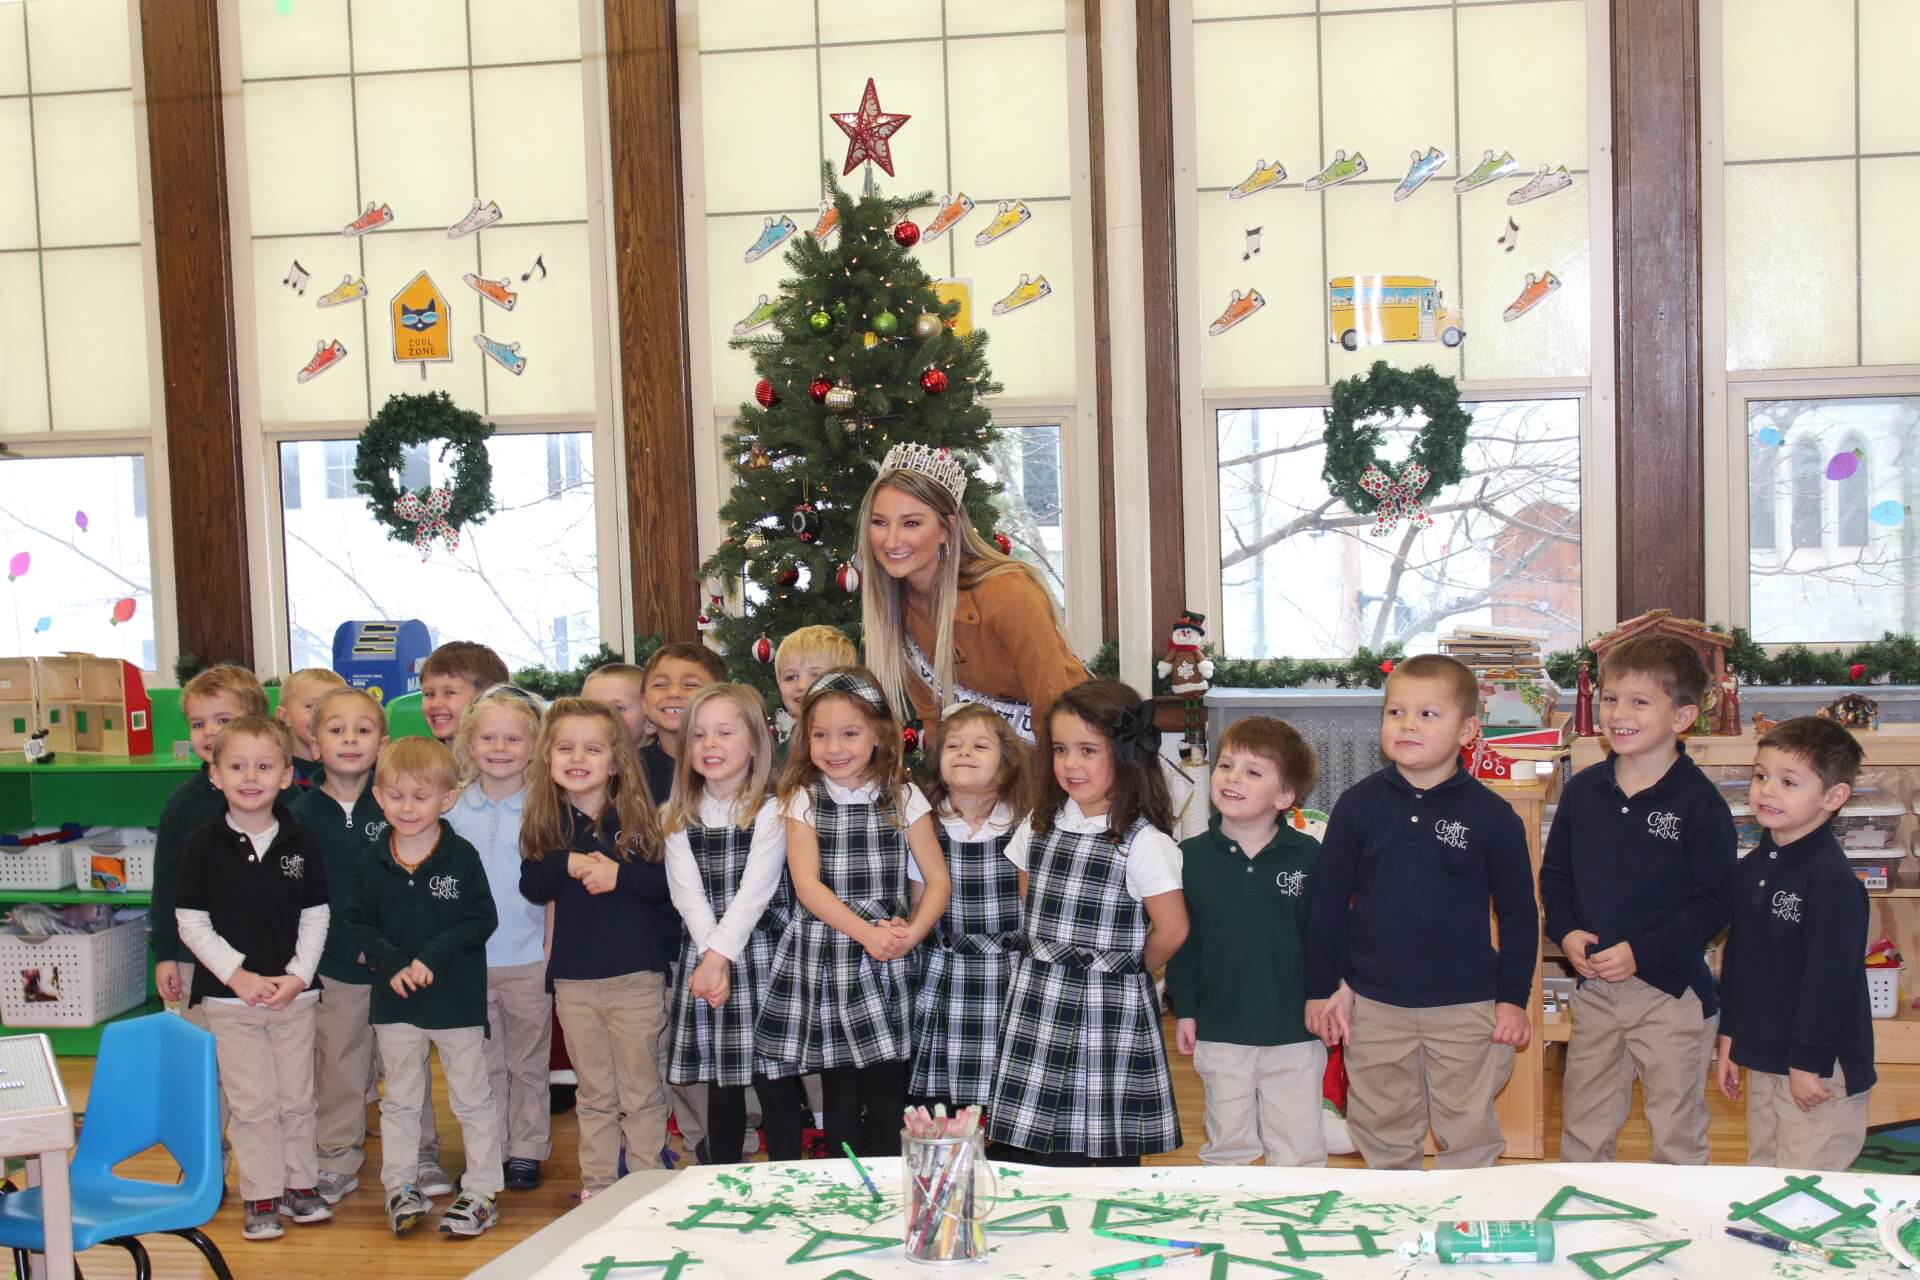 Christmas In Vermont 2019 Miss Vermont USA 2019 visits Christ the King School in Rutland